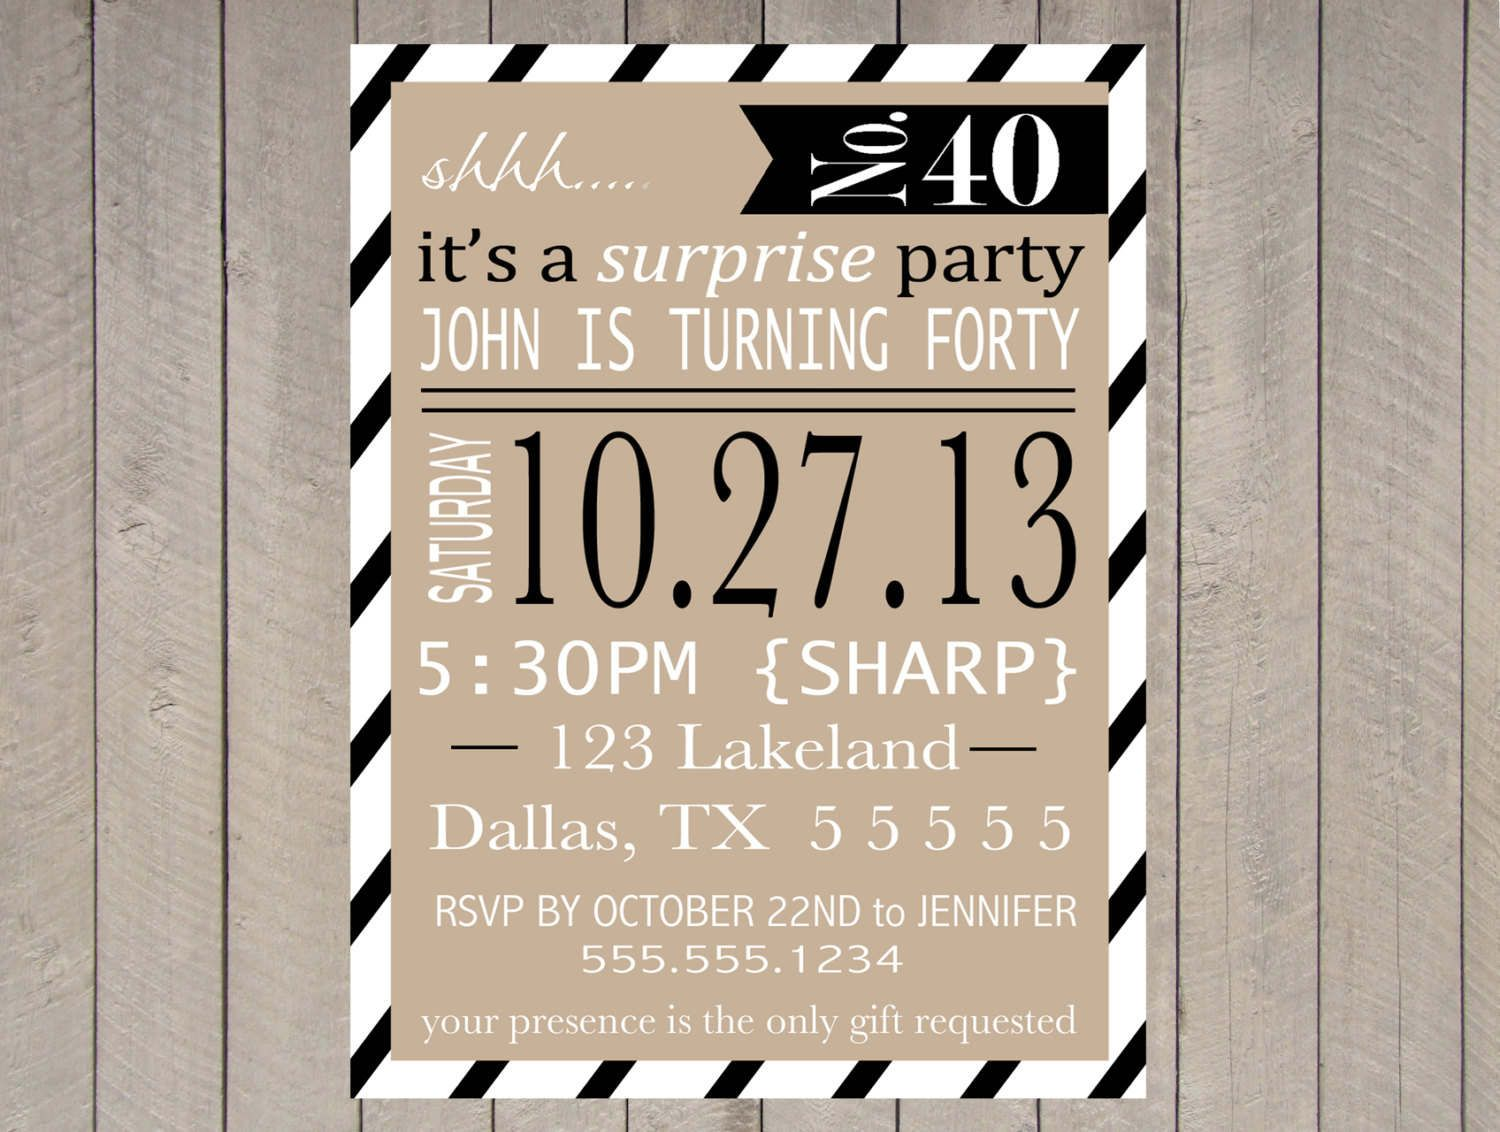 Free Printable Surprise Party Invitation Templates | Invitations ...